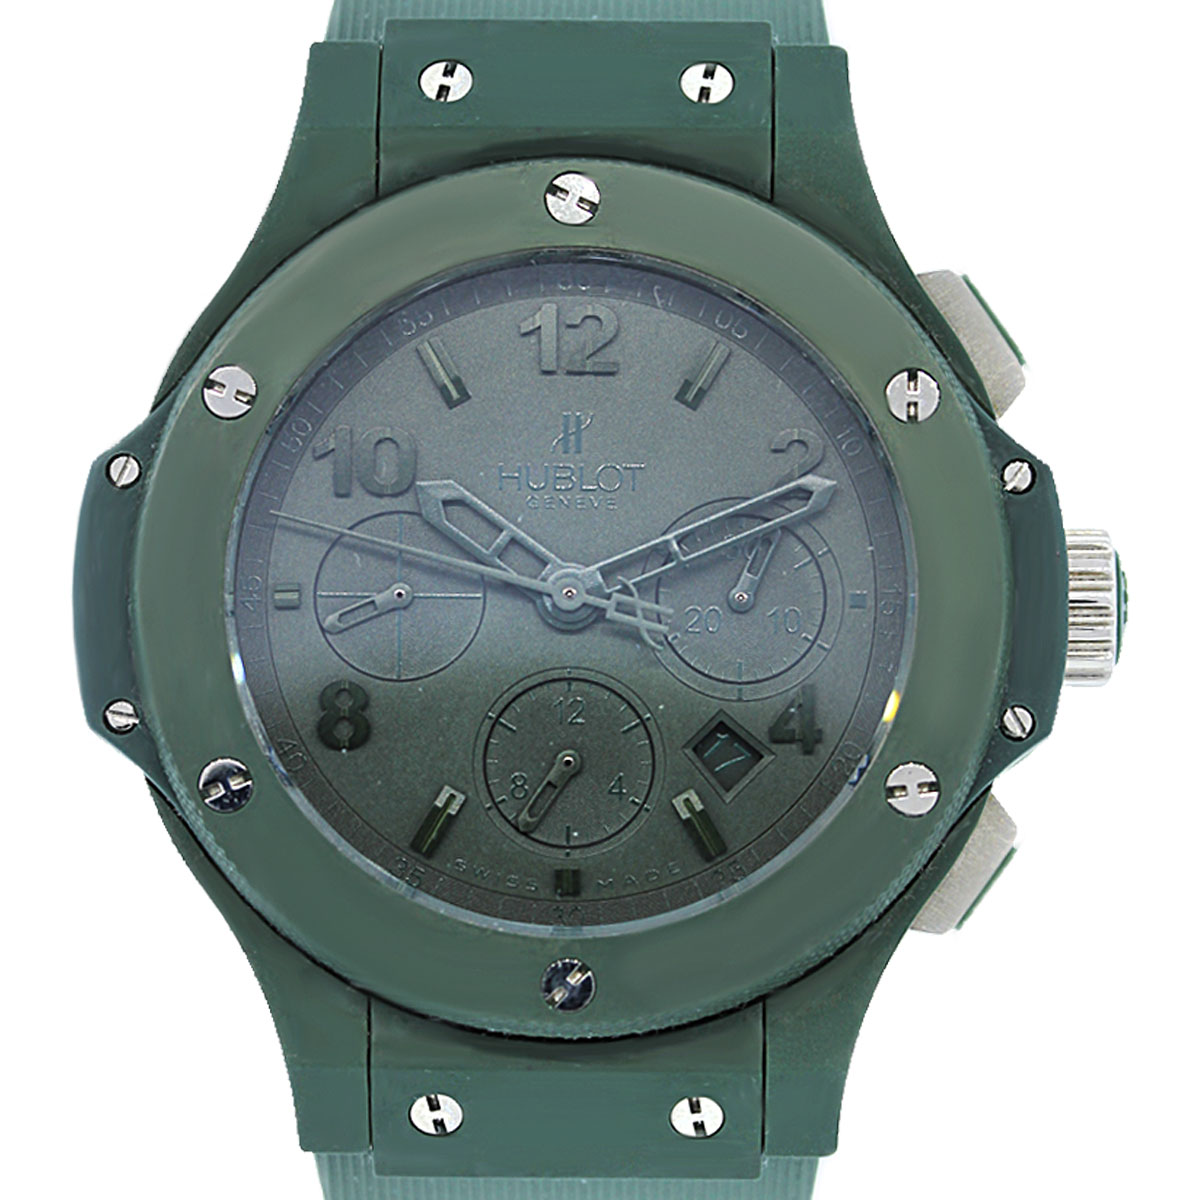 Hublot All Green PVD and Titanium Watch